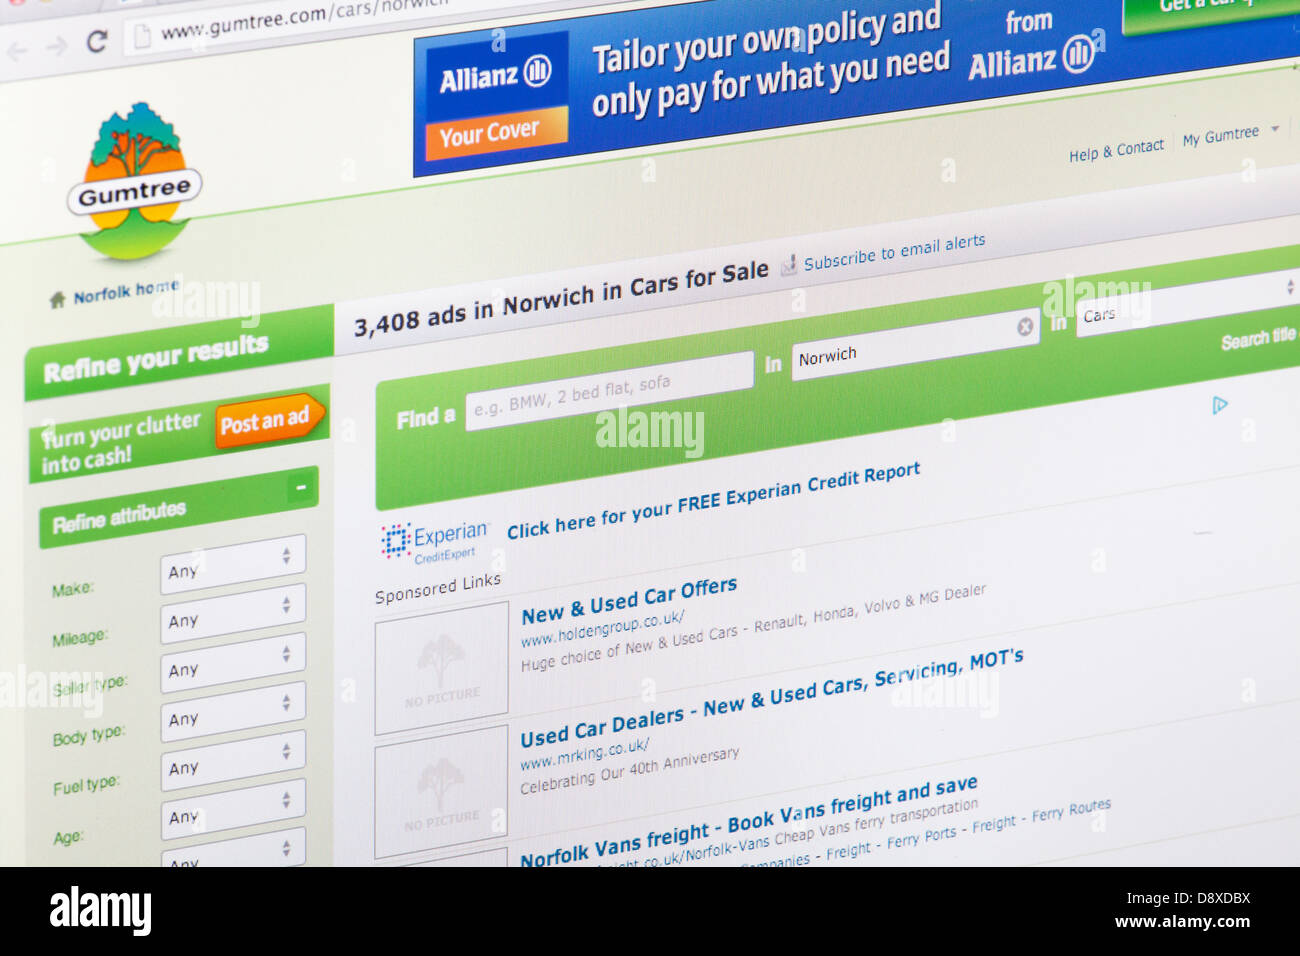 Gumtree Freeads free local advertising Website or web page on a laptop screen or computer monitor - Stock Image